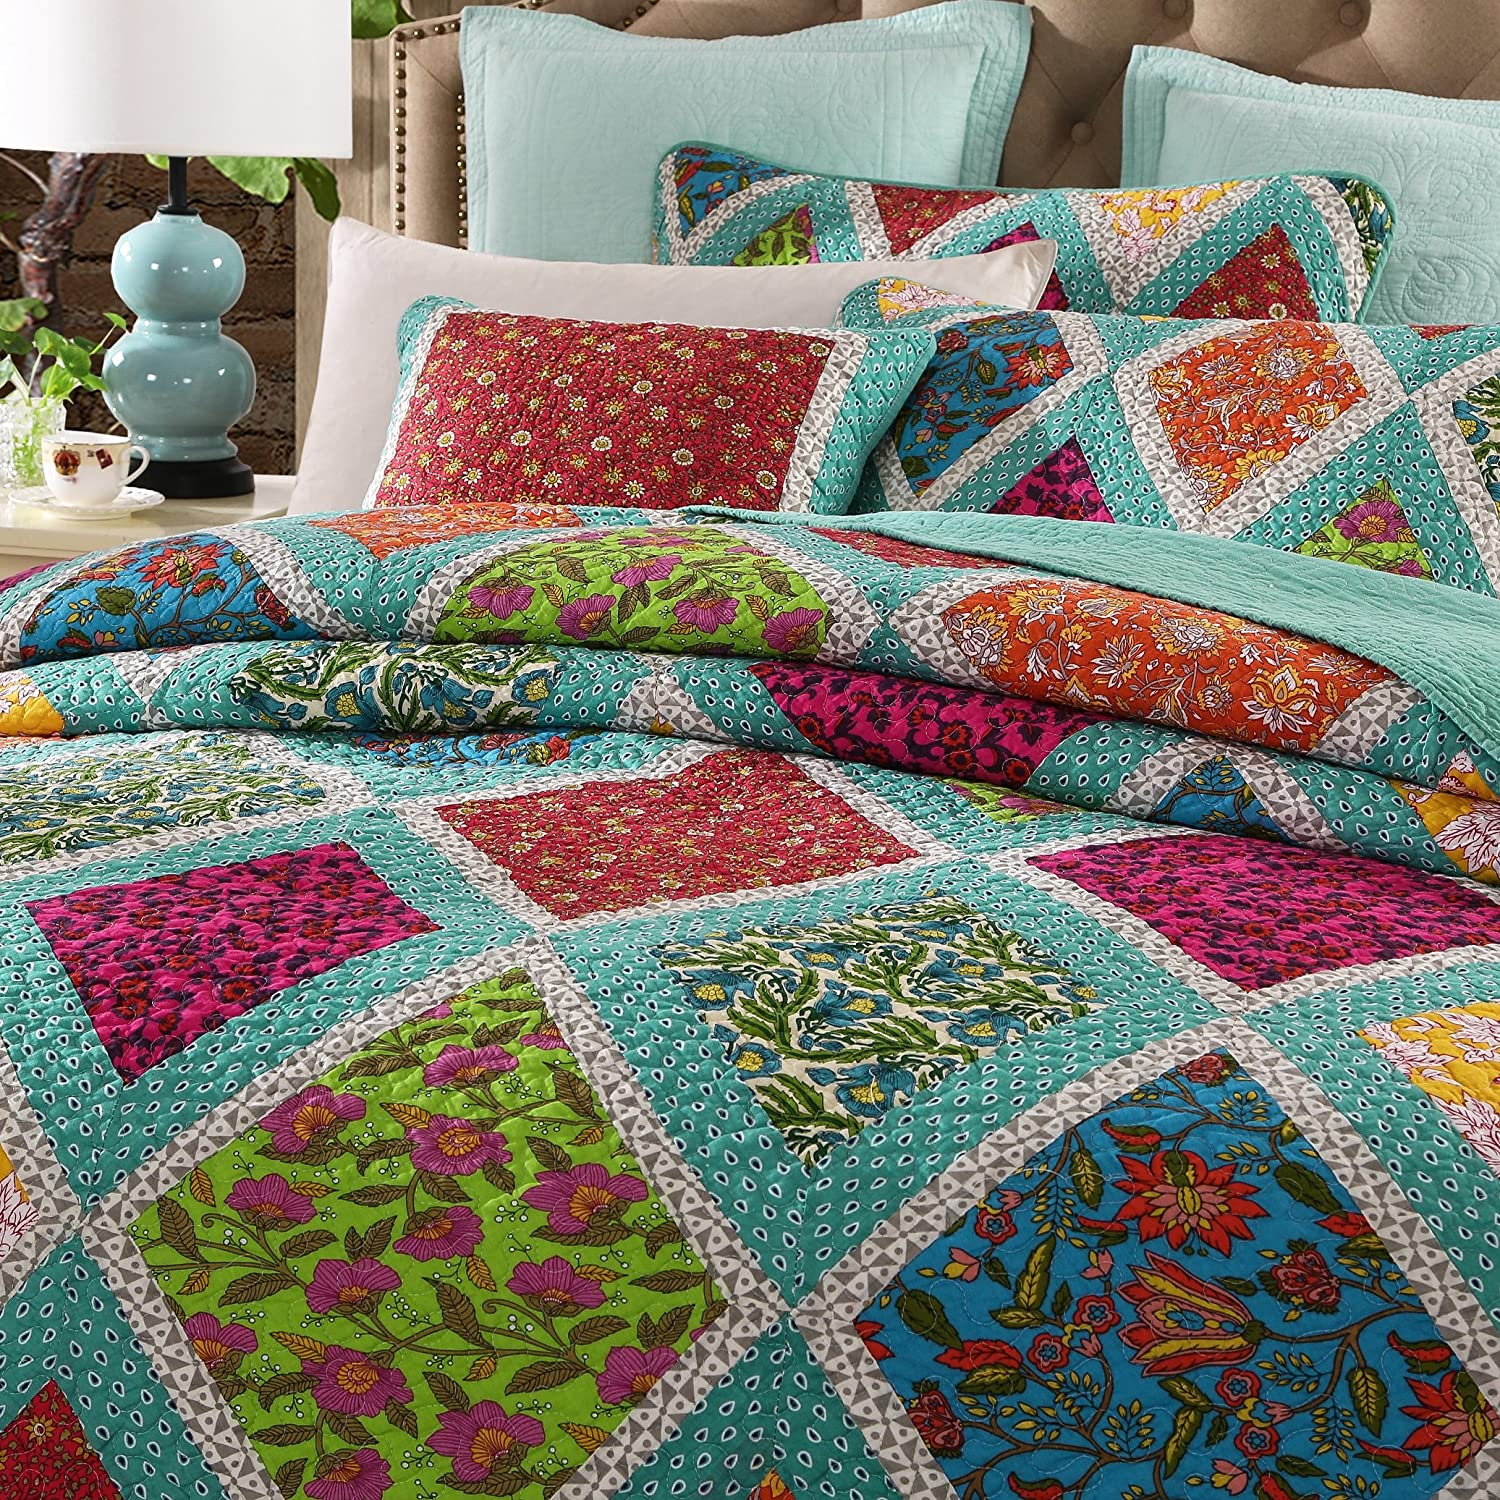 comforter quilts marimekko queen bedding mandala style quilt indian set bohemian